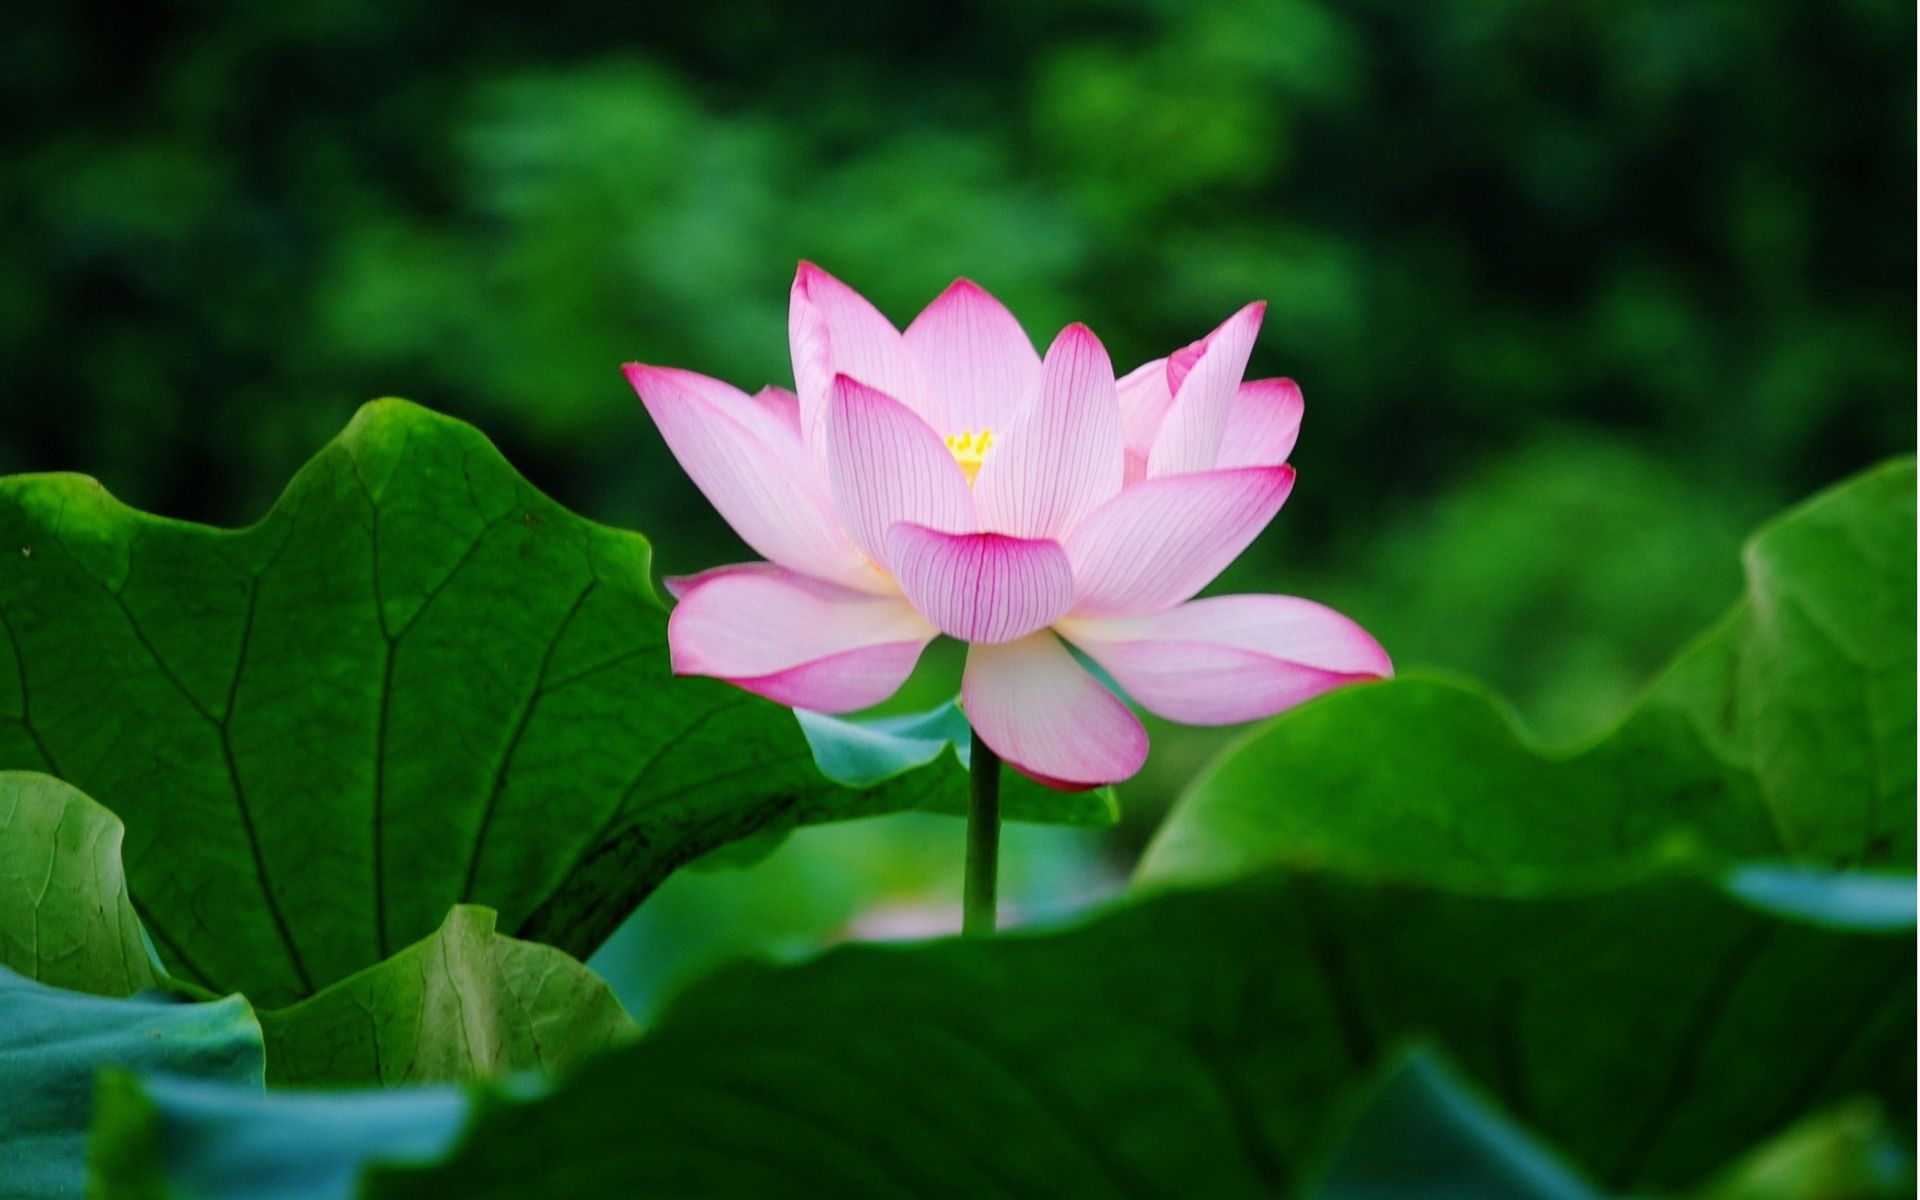 water lilies Google Search Flower photos, Lotus flower